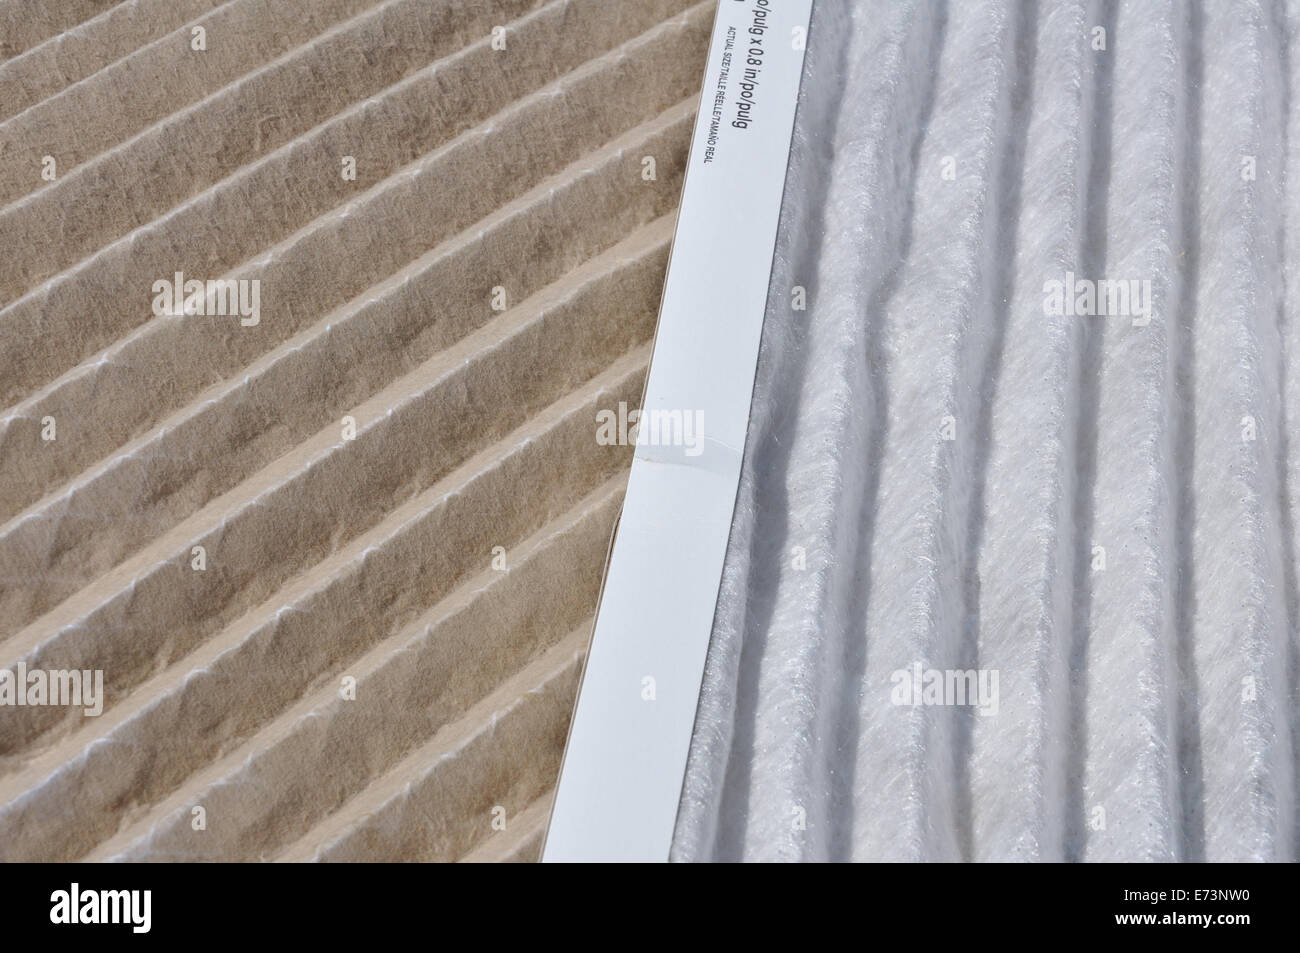 Dirty and clean home air conditioner filters